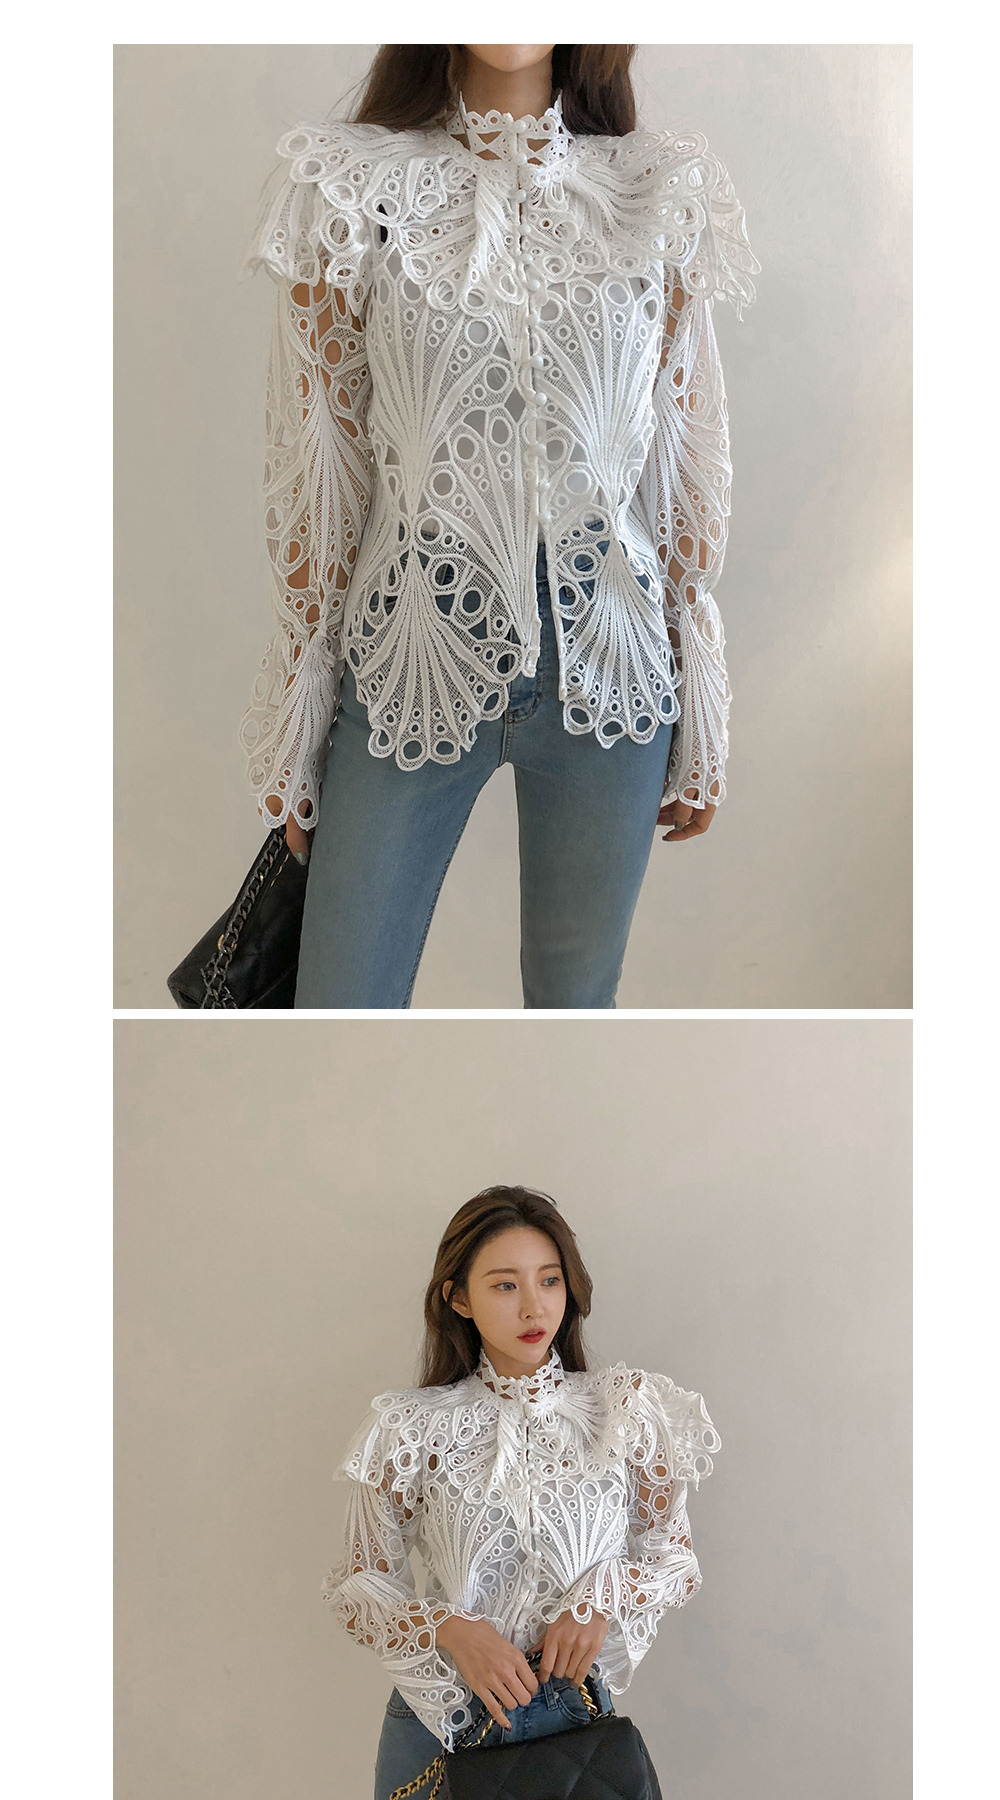 Hfcda347332cb4b96816272c32a5c09f3b - Spring / Autumn Stand Collar Flare Long Sleeves Hollow Out Blouse with Tank Top